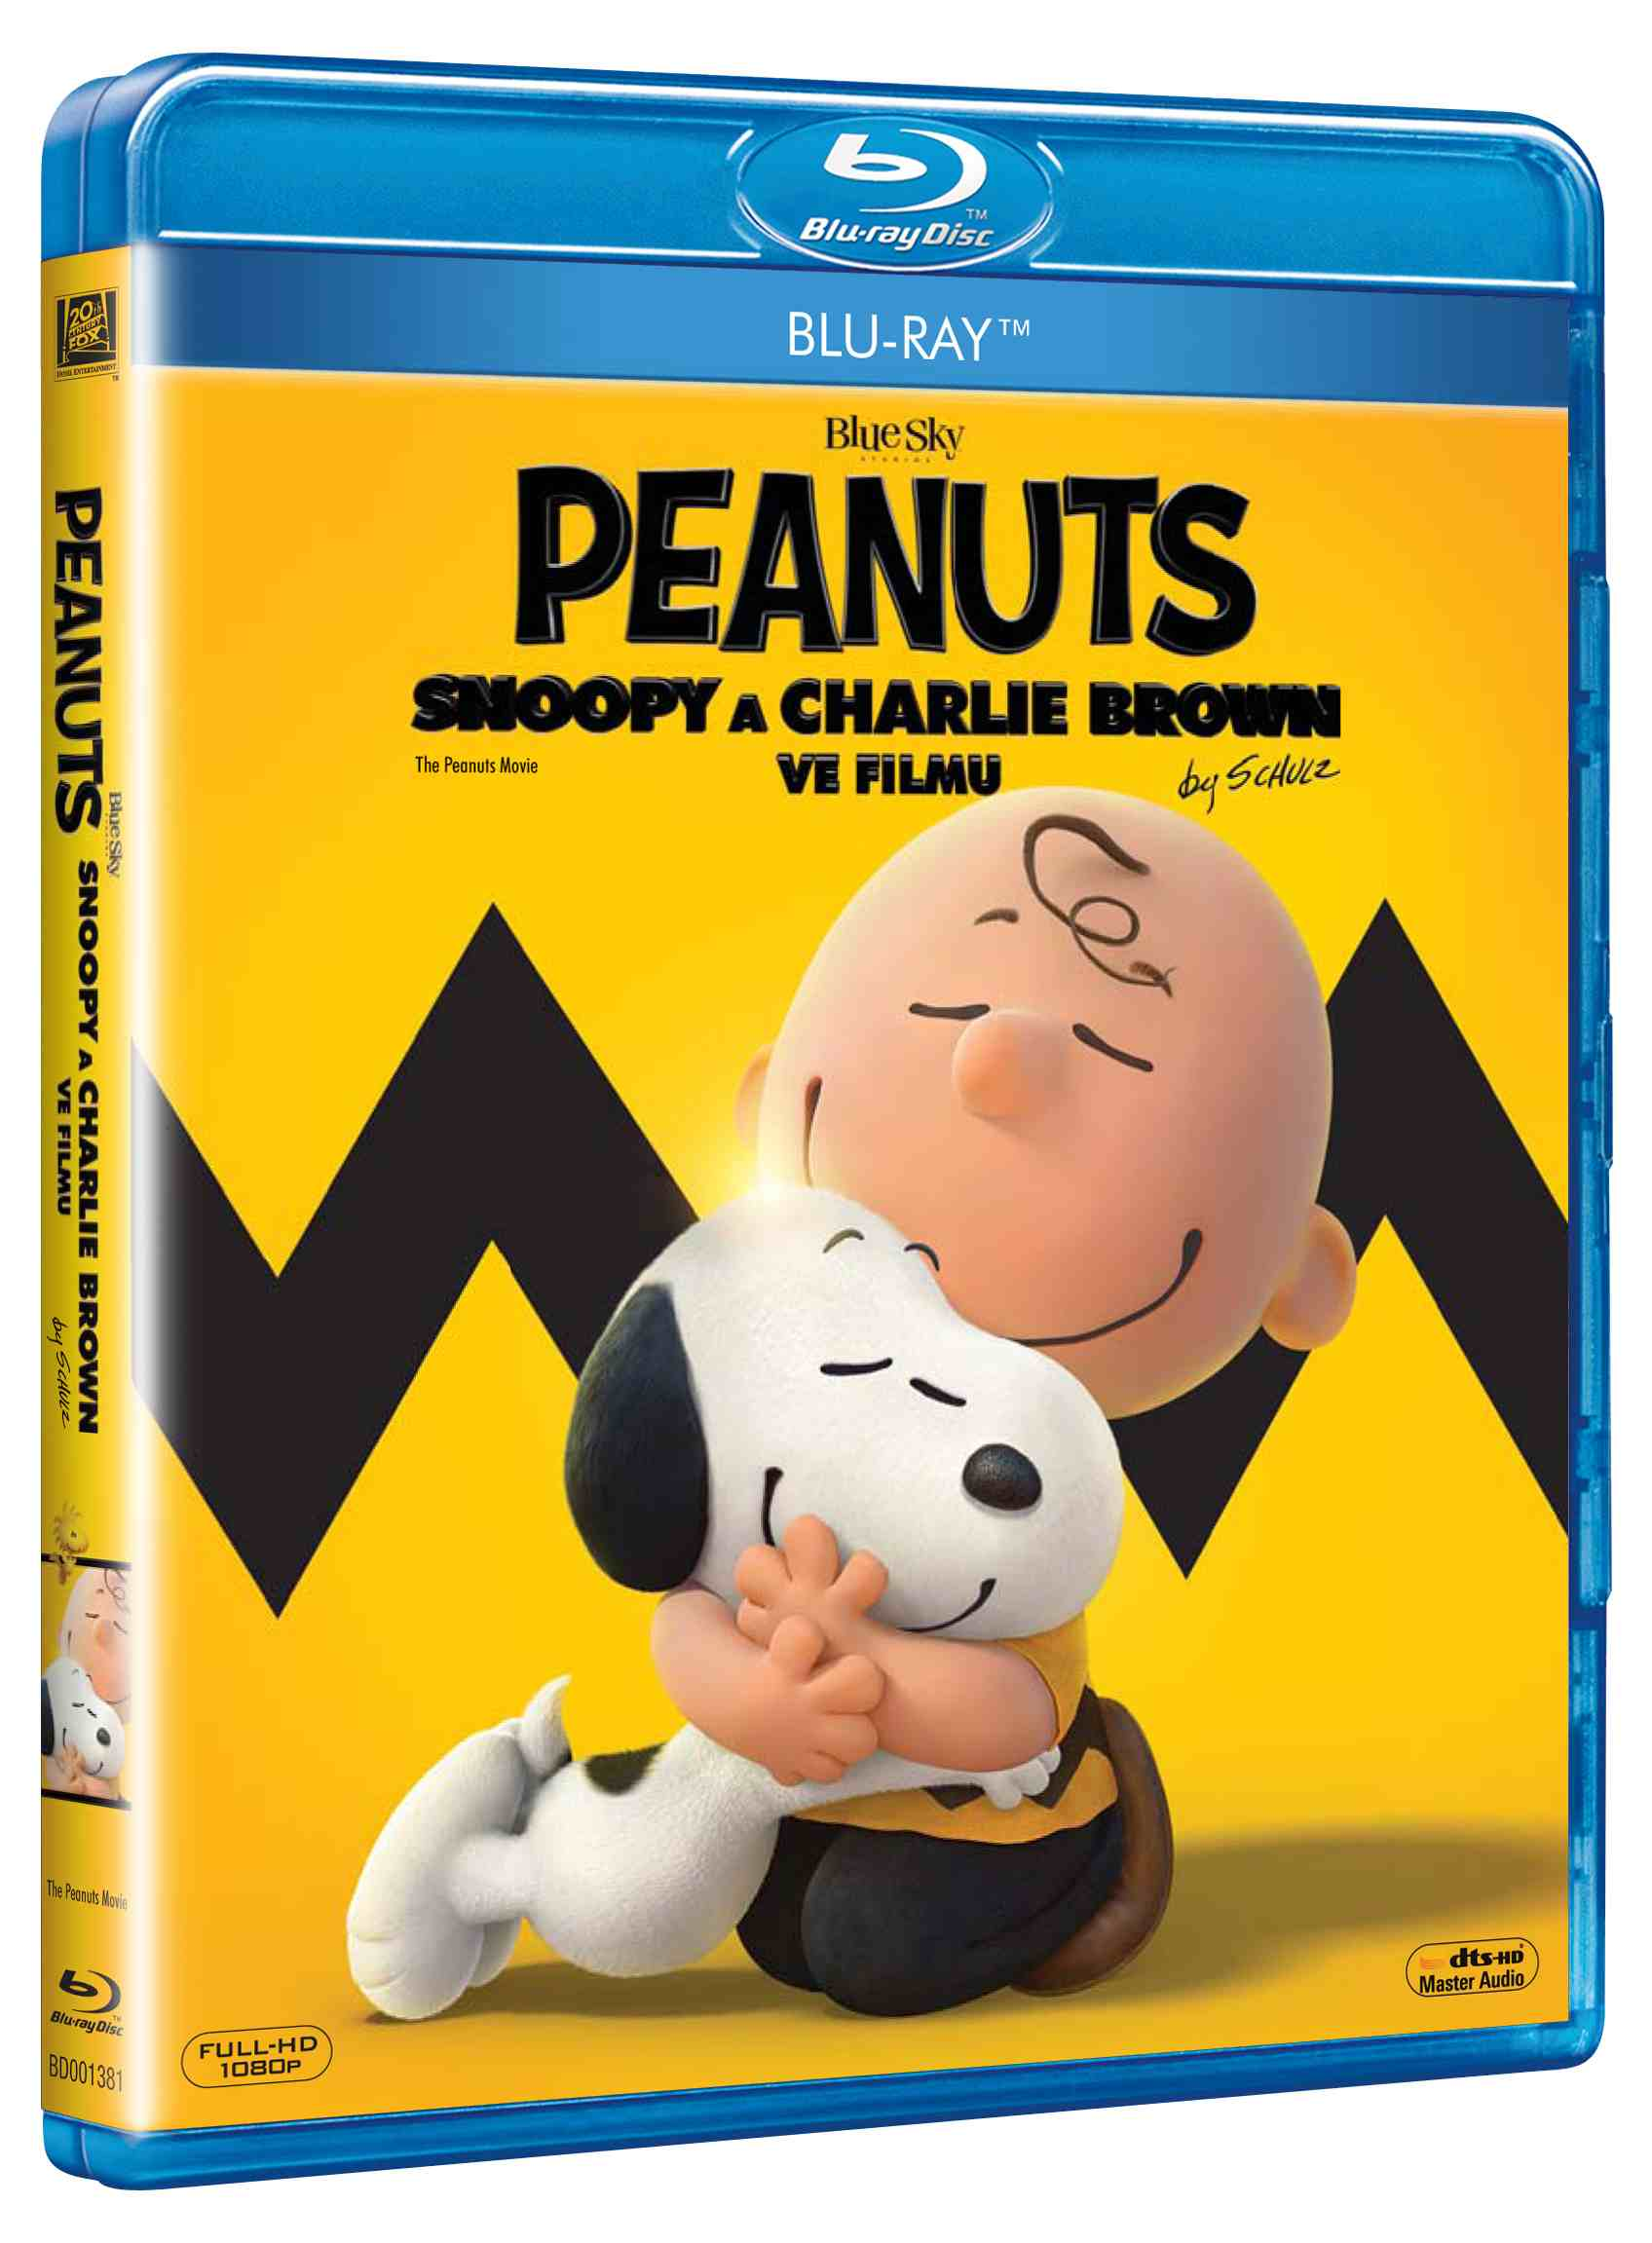 PEANUTS: SNOOPY A CHARLIE BROWN VE FILMU - Blu-ray